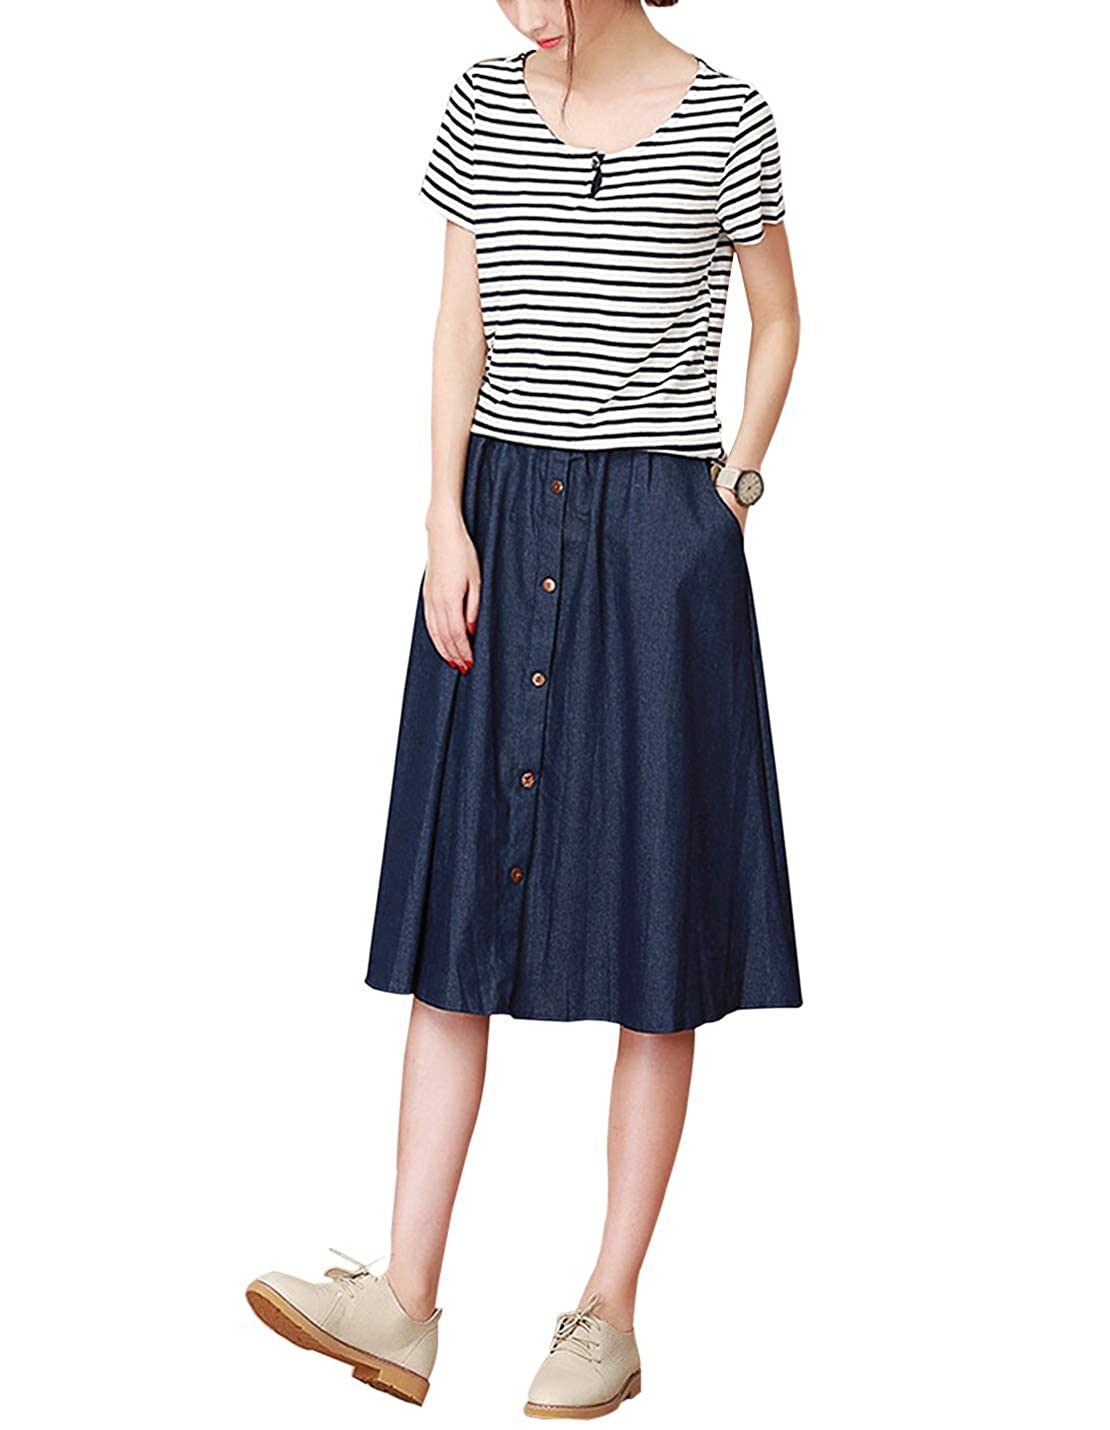 33fead081aa071 Gihuo Women's Elastic Waist Denim Midi Skirt High Rise Button Front Pleated  Skirt at Amazon Women's Clothing store: